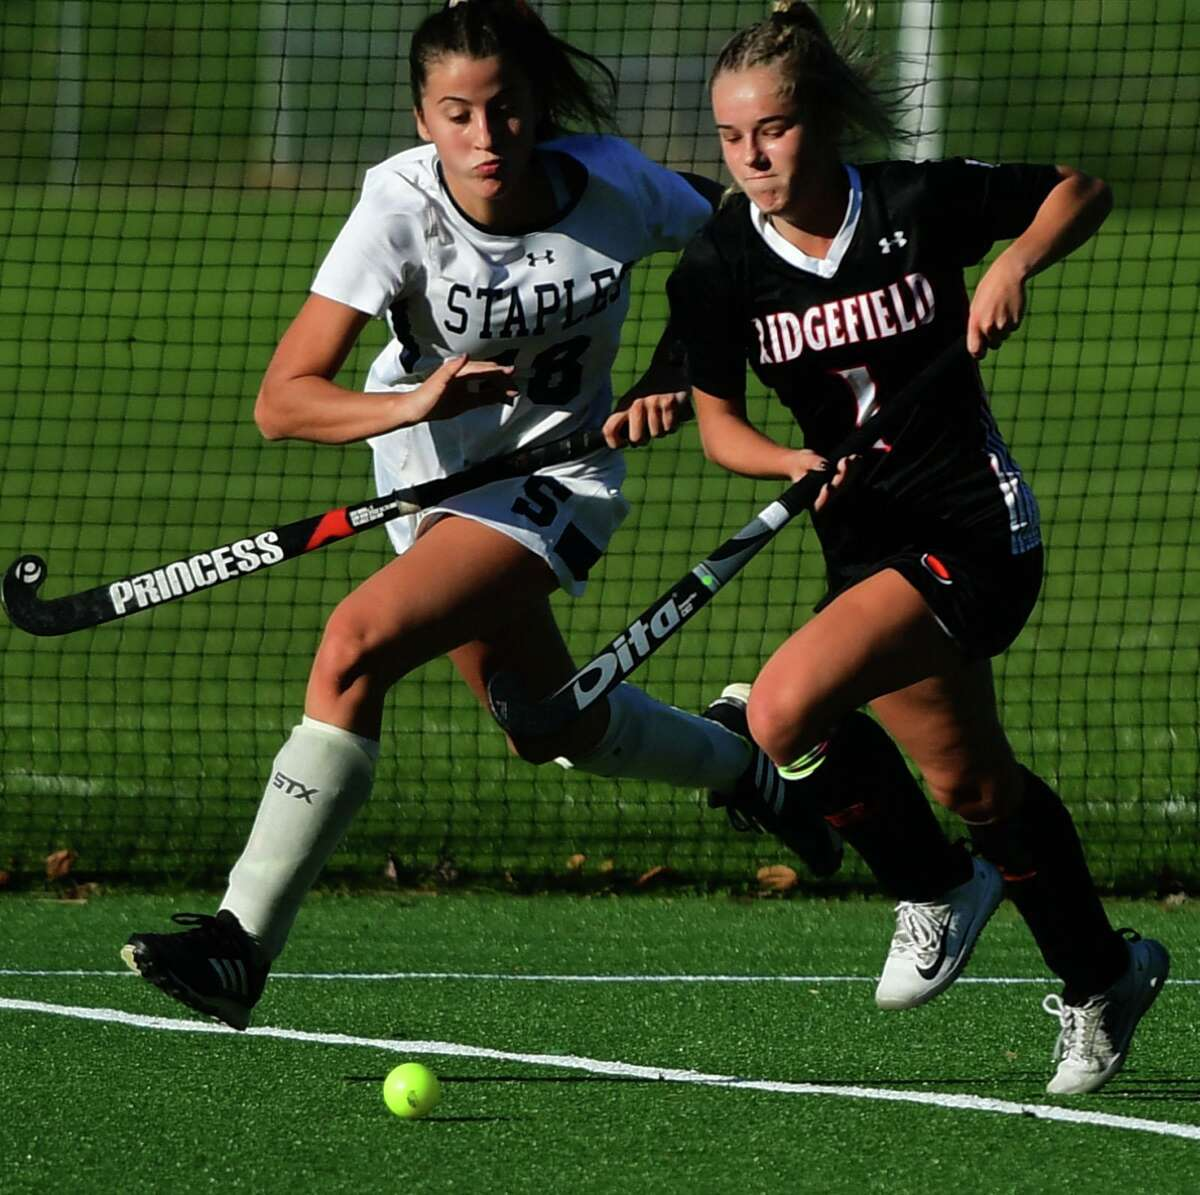 Staples' Olivia Bernard (18) and Ridgefield's Isabel Redrup (1) run for the ball in in their FCIAC Central field hockey championship game on Nov. 10 in Westport.